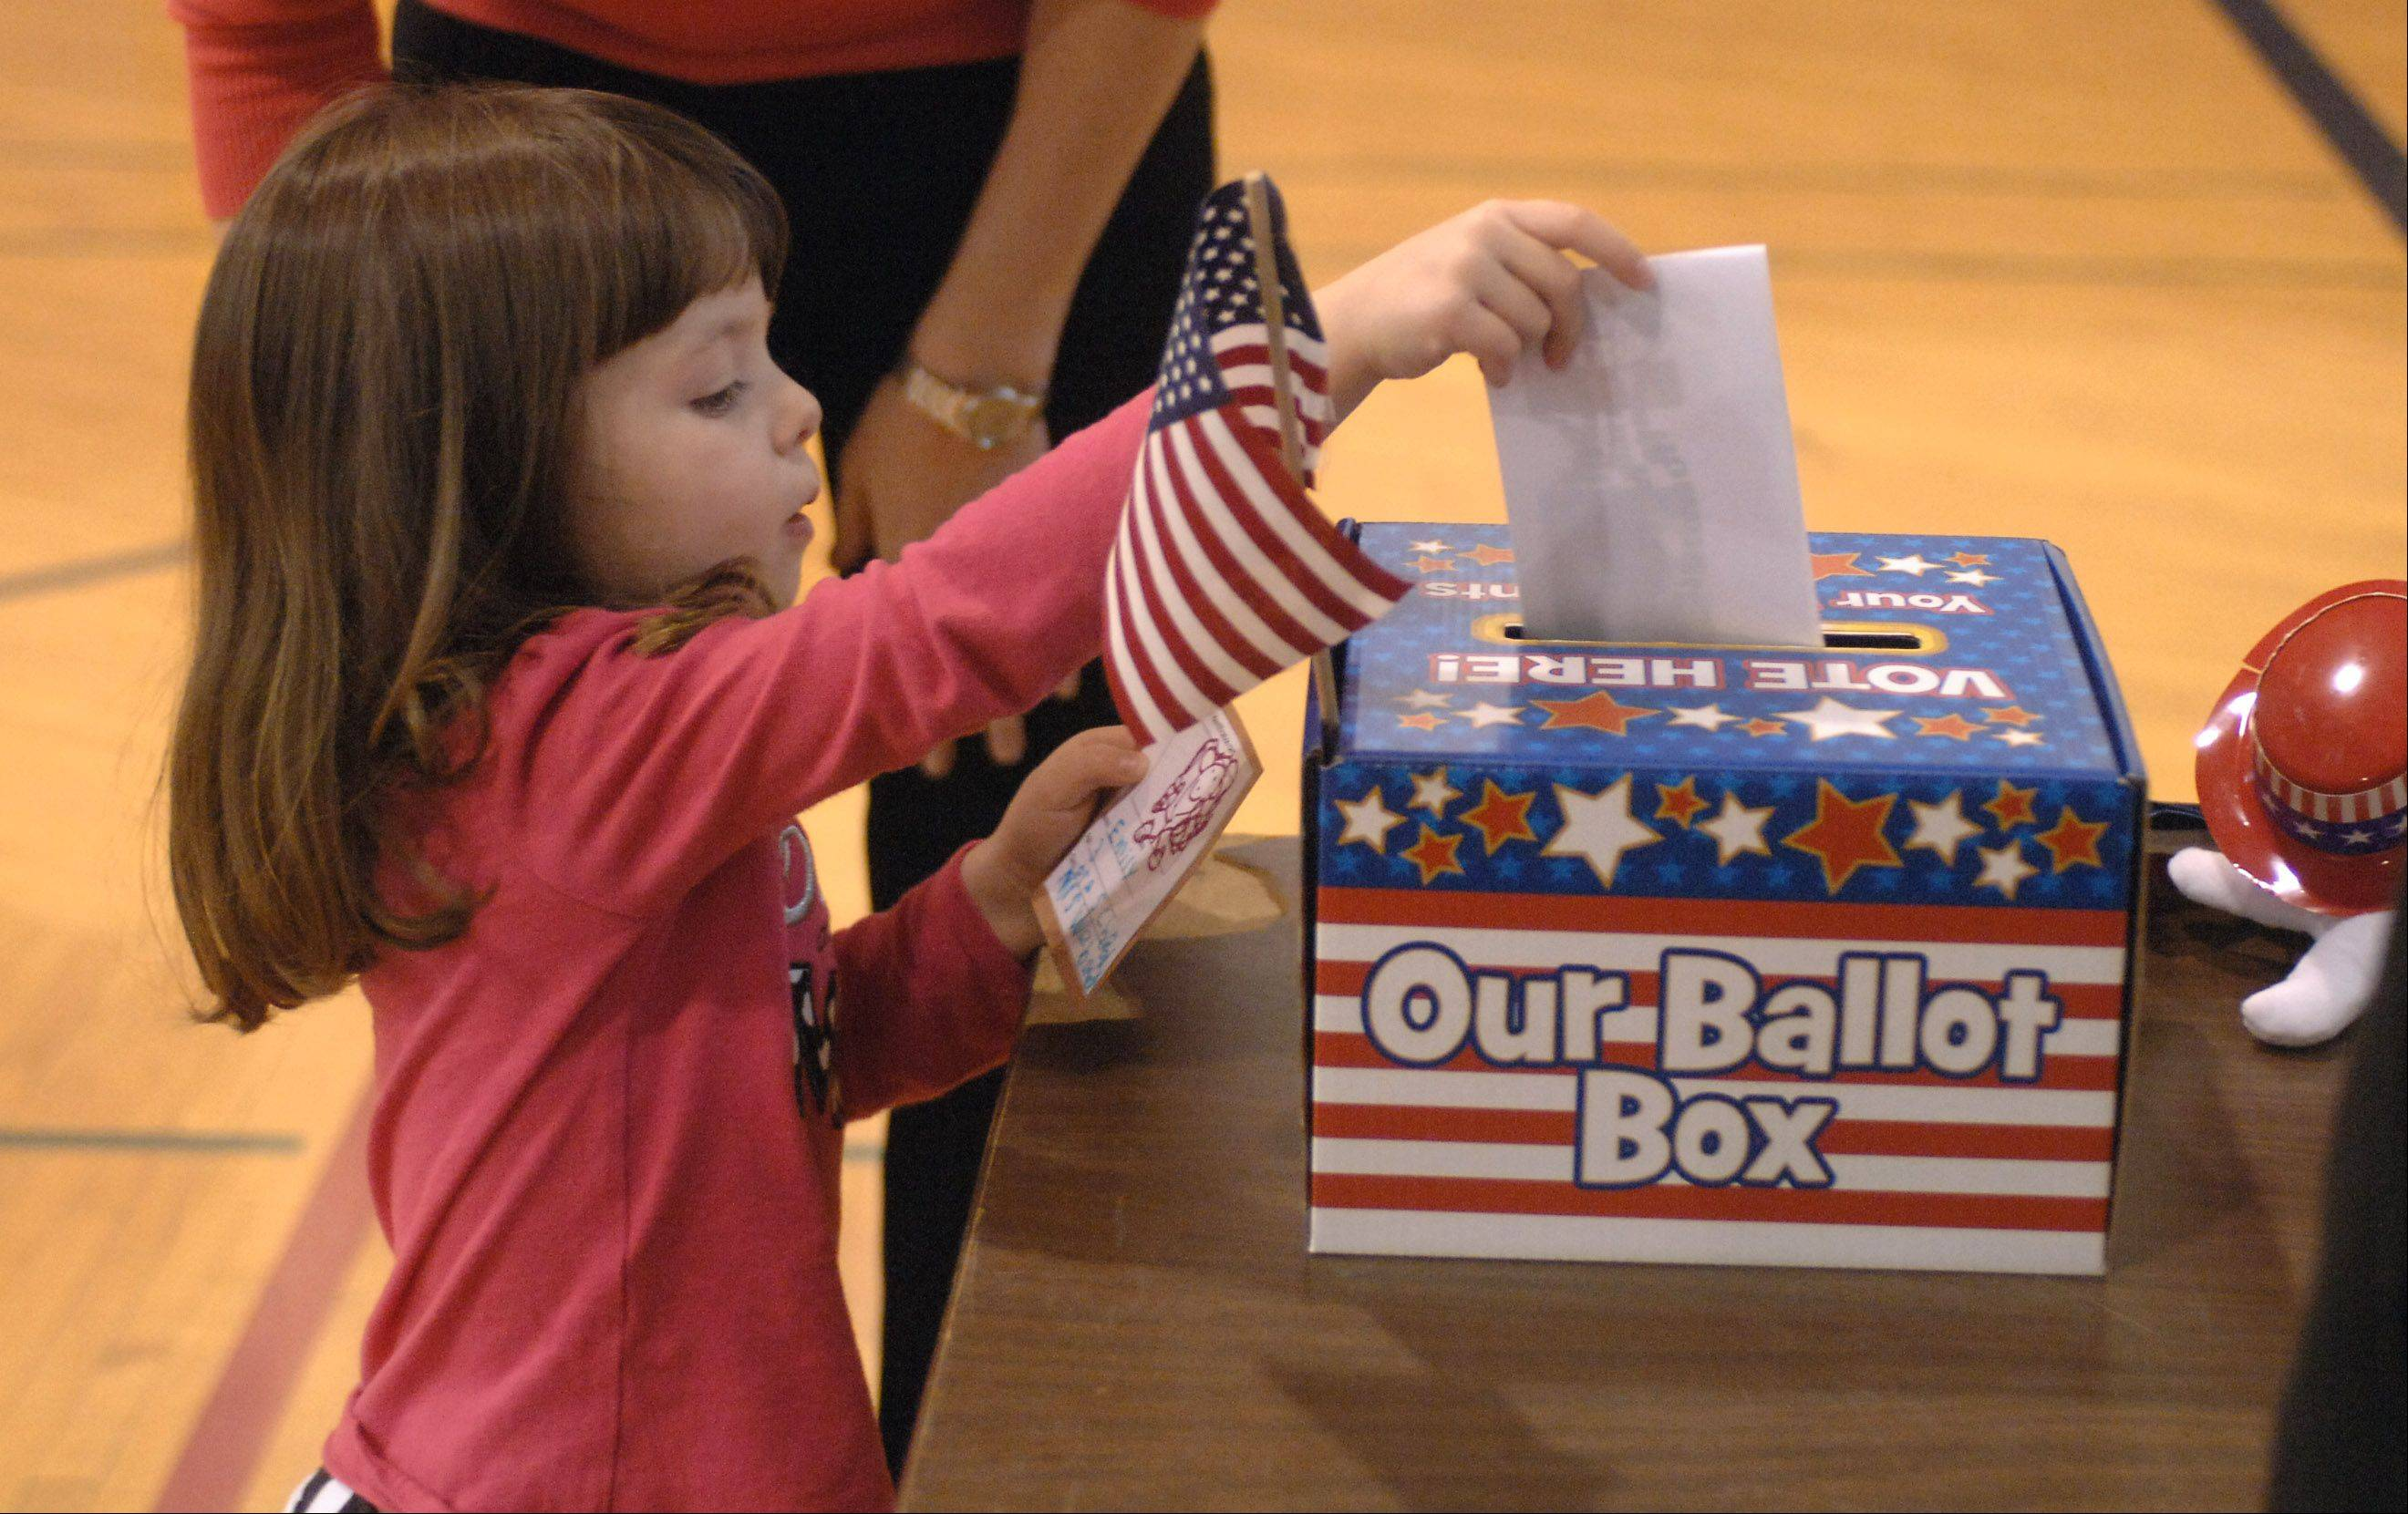 Preschool student Emily Horbus, 3, places her ballot in the box after voting for a president in a mock election Tuesday at St. Matthew Lutheran School in Hawthorn Woods. Students have been learning about the voting process and the candidates and around 115 students and teachers voted.